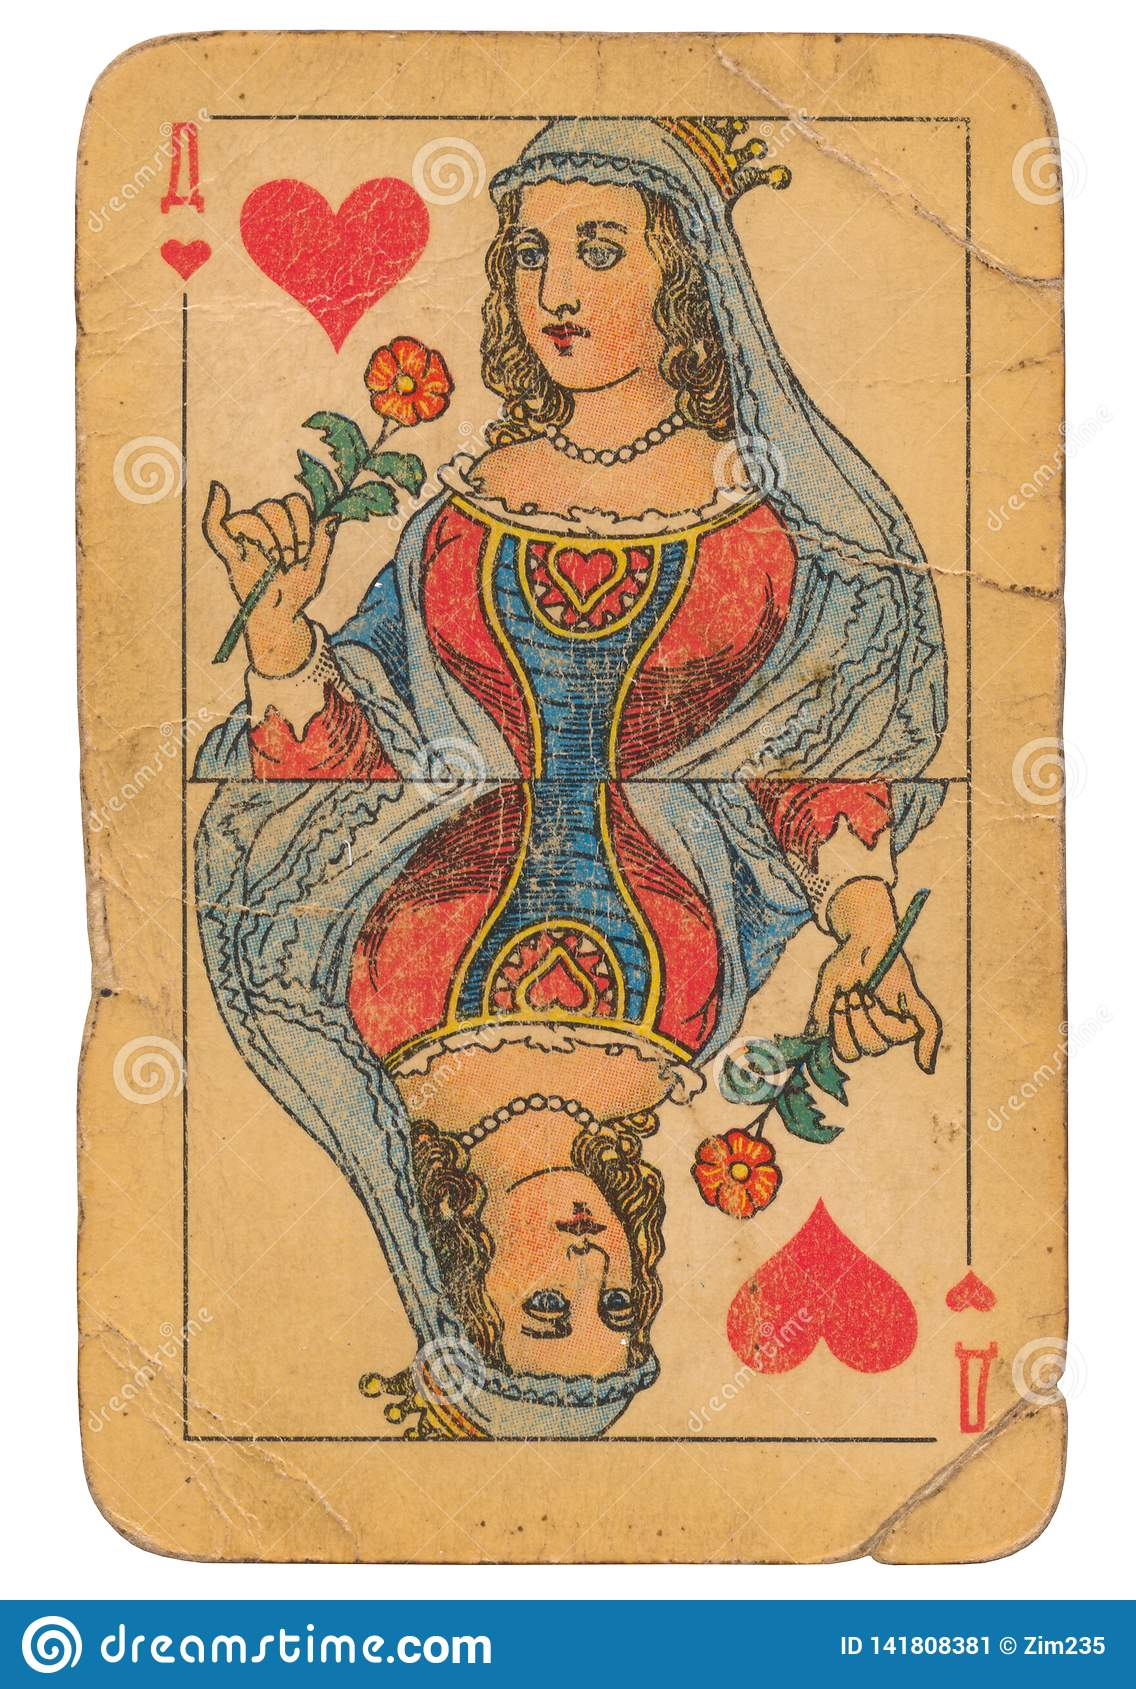 Queen Of Hearts Old Grunge Soviet Style Playing Card Stock Image Image Of Shadow Risk 141808381